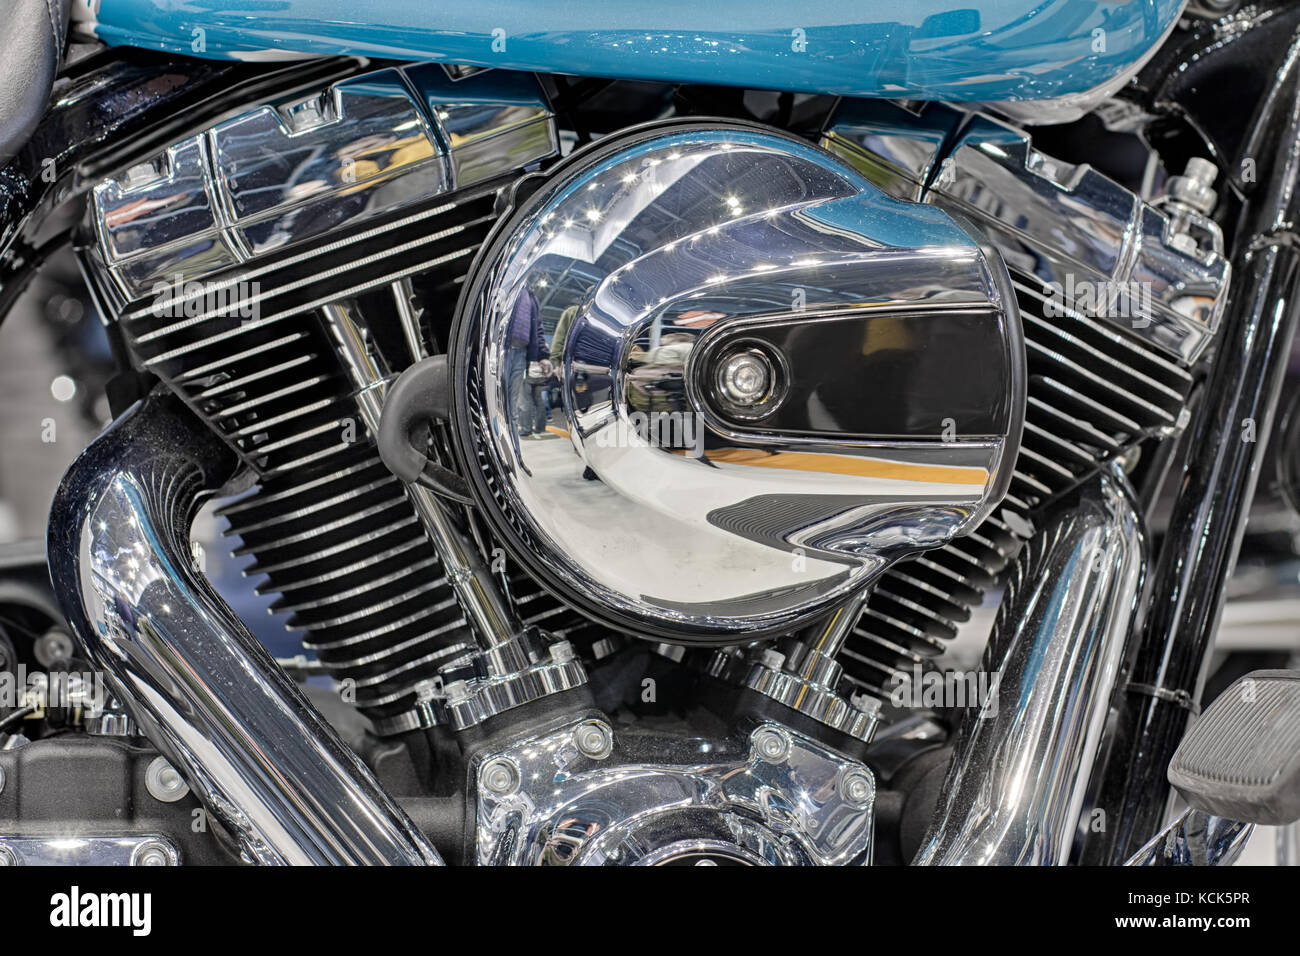 Twin Air Engine Oil Cooler : Air cooled engine stock photos